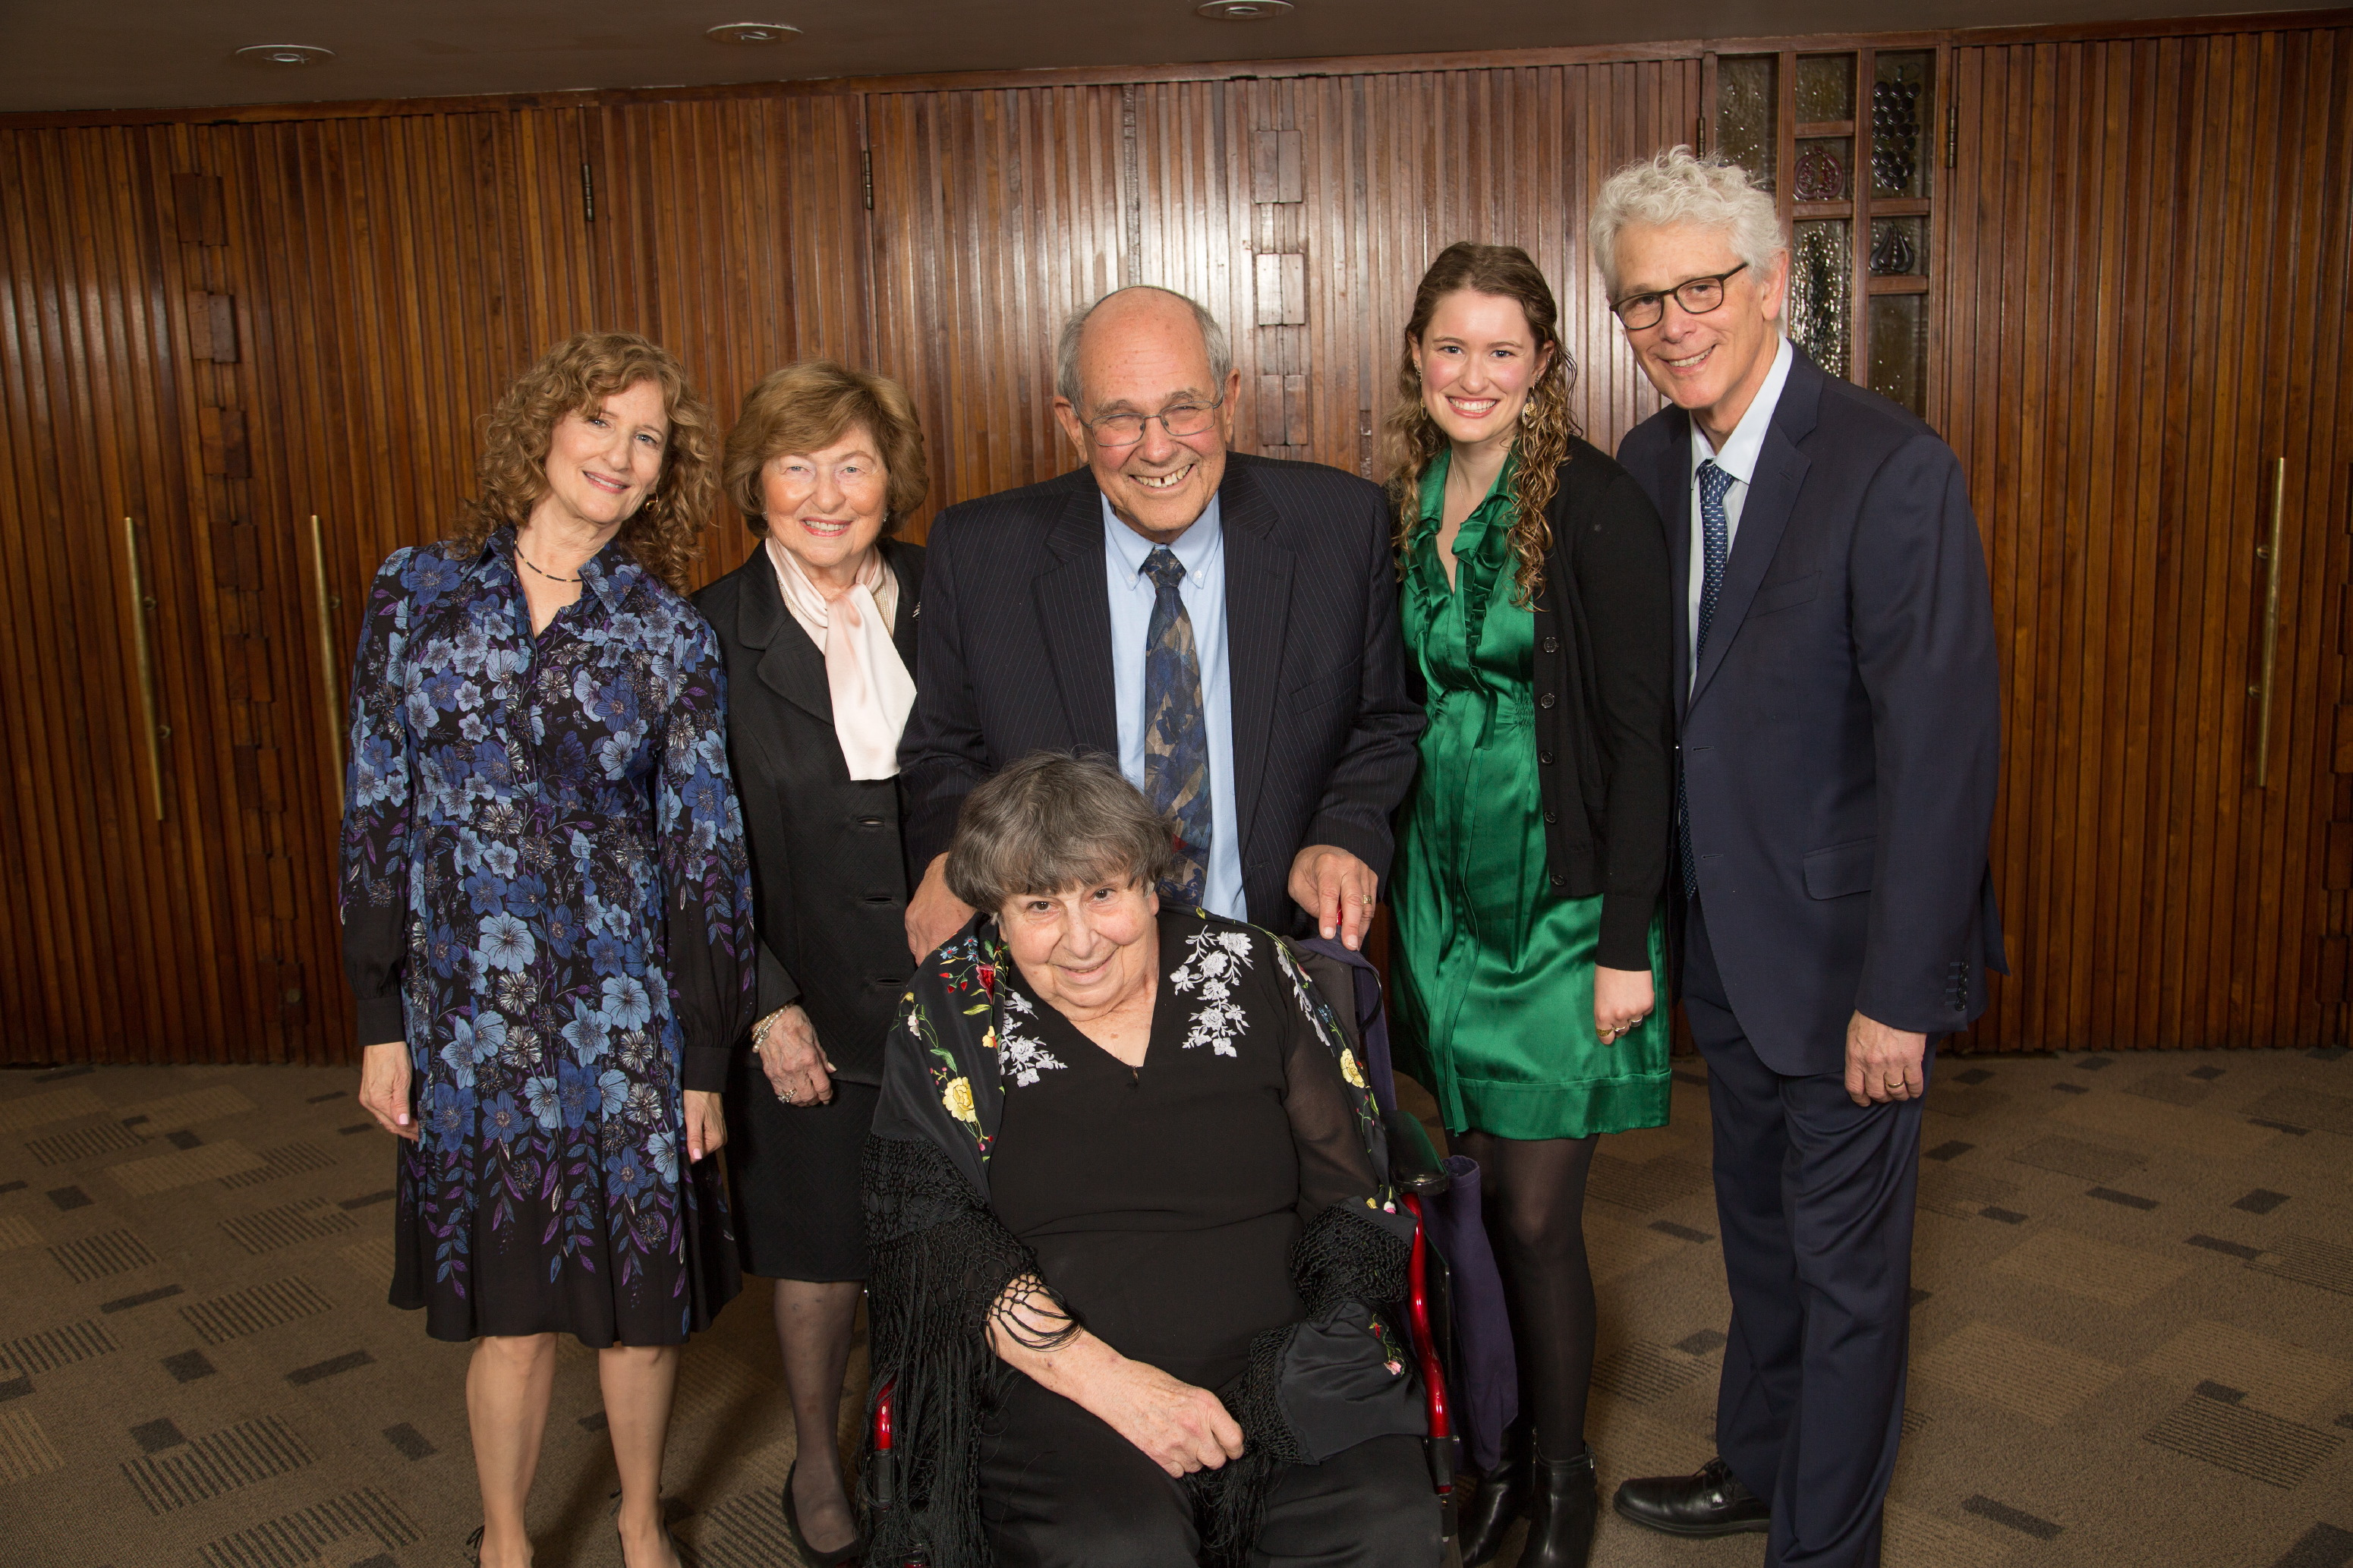 BJE Gala Co-Chair Susan Jacoby Stern with Lela and Norman Jacoby, Honorees Marlynn and Elliot Dorff, daughter Anna Stern and husband Joel Stern